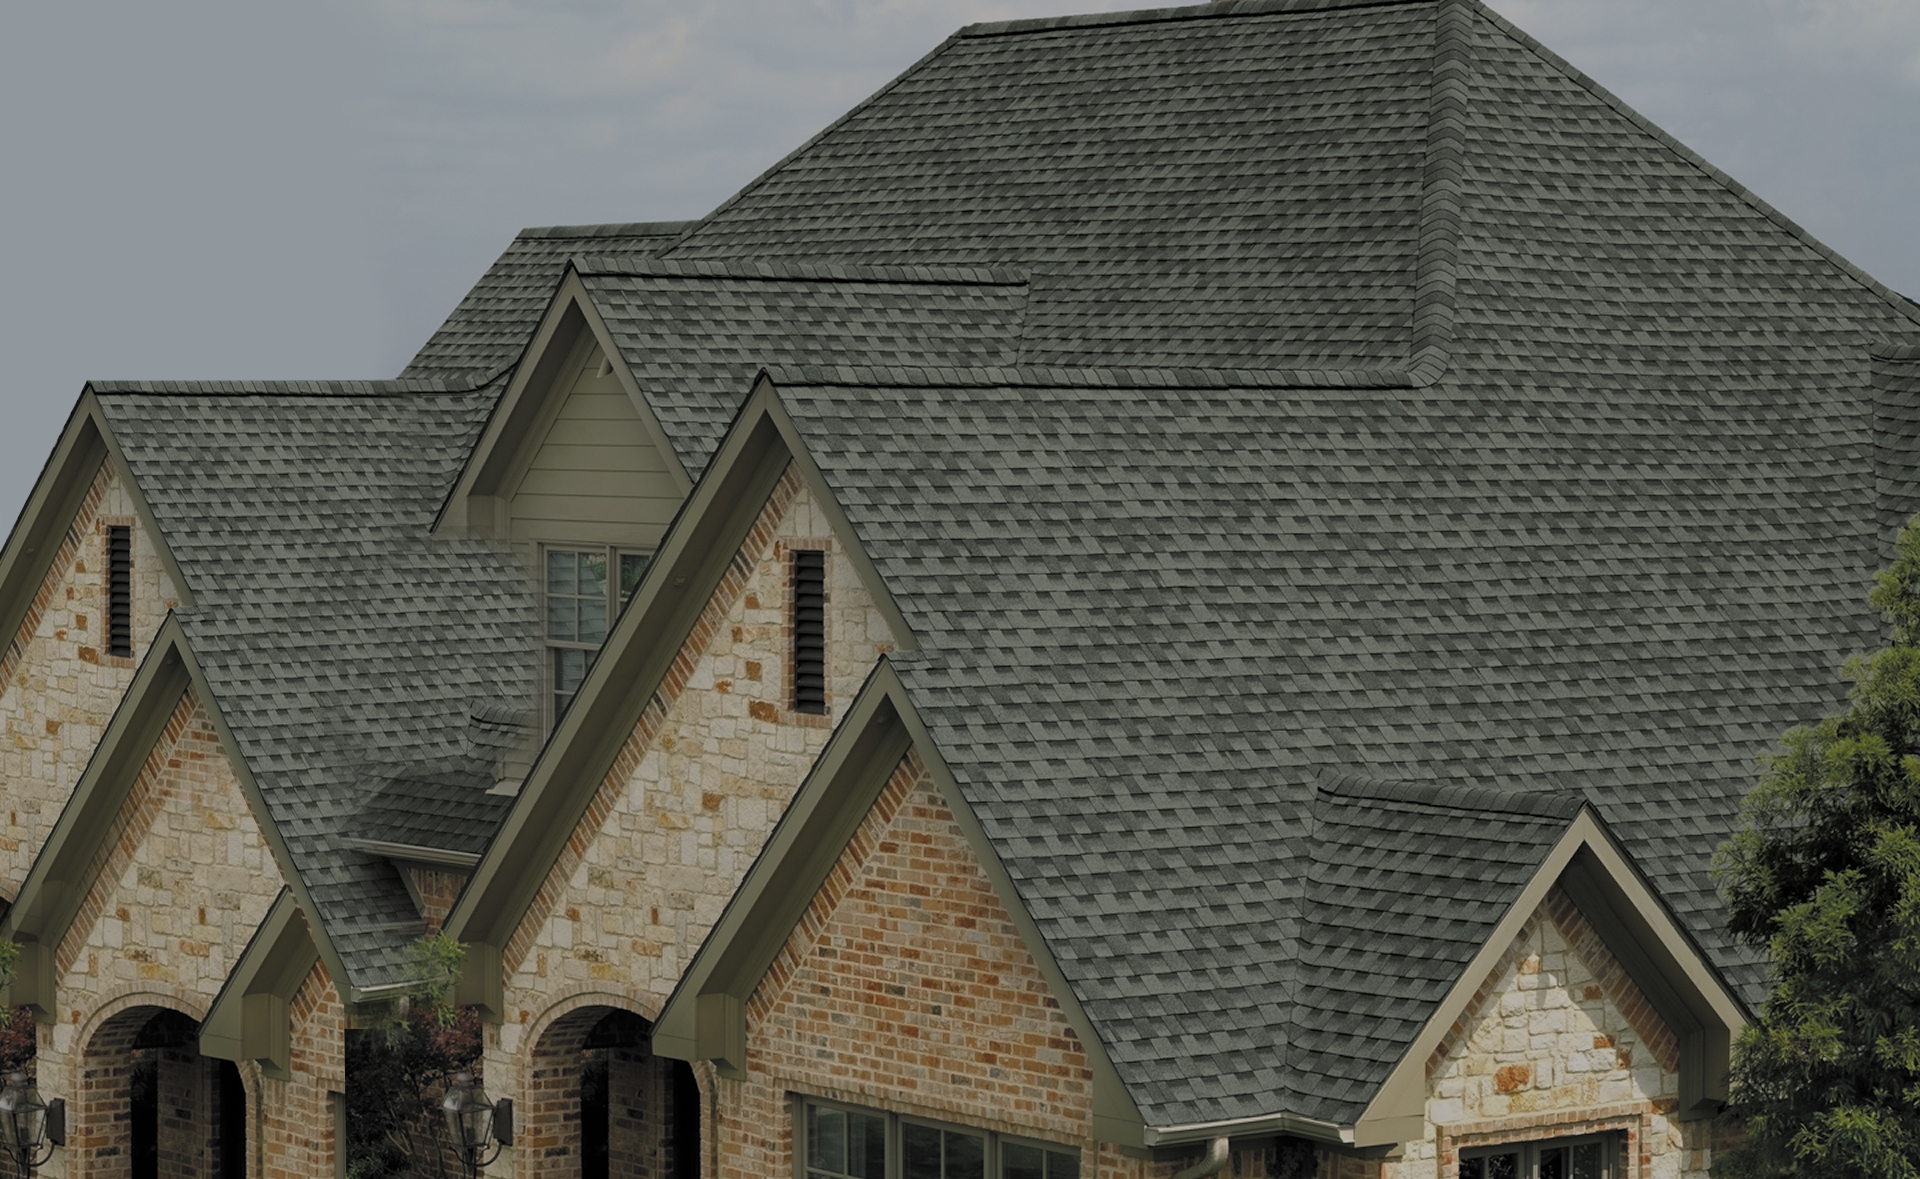 Choosing Shingles With Help From A Roofing Contractor In Arlington Heights